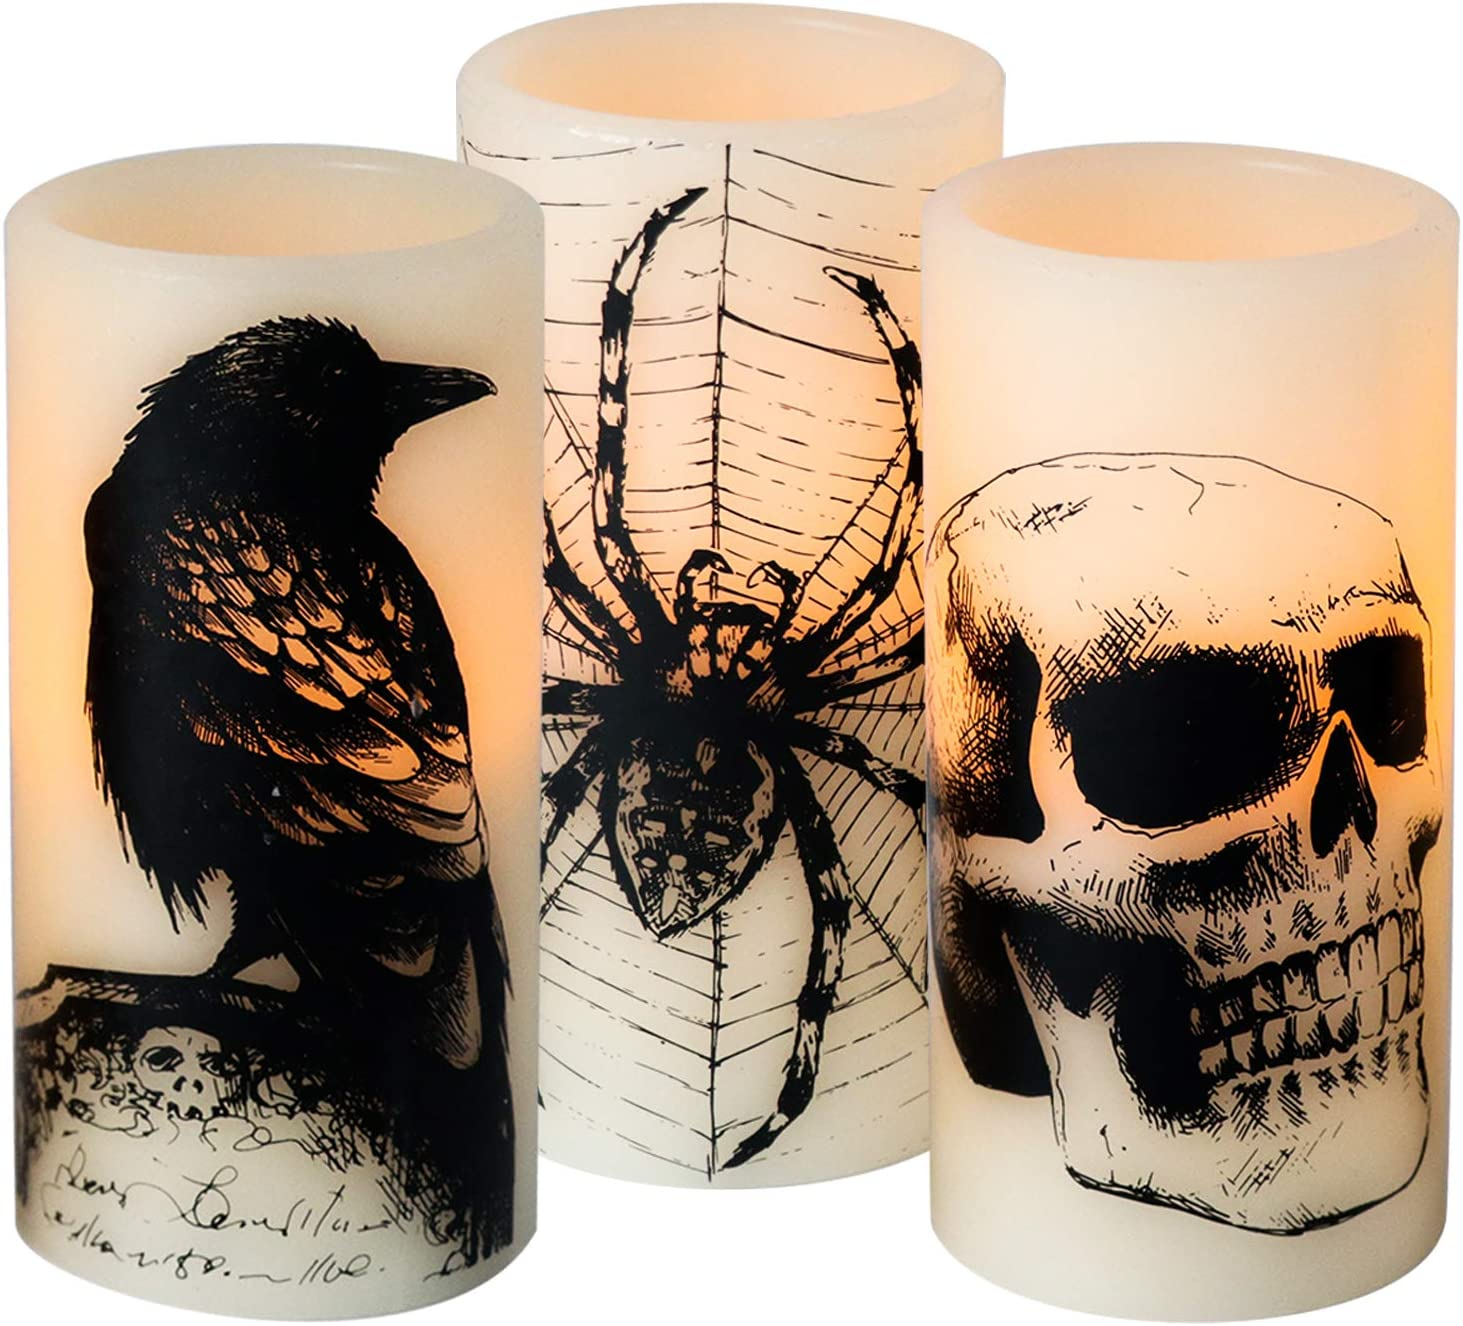 DRomance White Flameless Flickering Candles Battery Operated with Timer, 3 Pack LED Pillar Candles Real Wax Warm Yellow Light Crow, Spider Cobweb, Skull Decal Halloween Spooky Decor Candle(D3